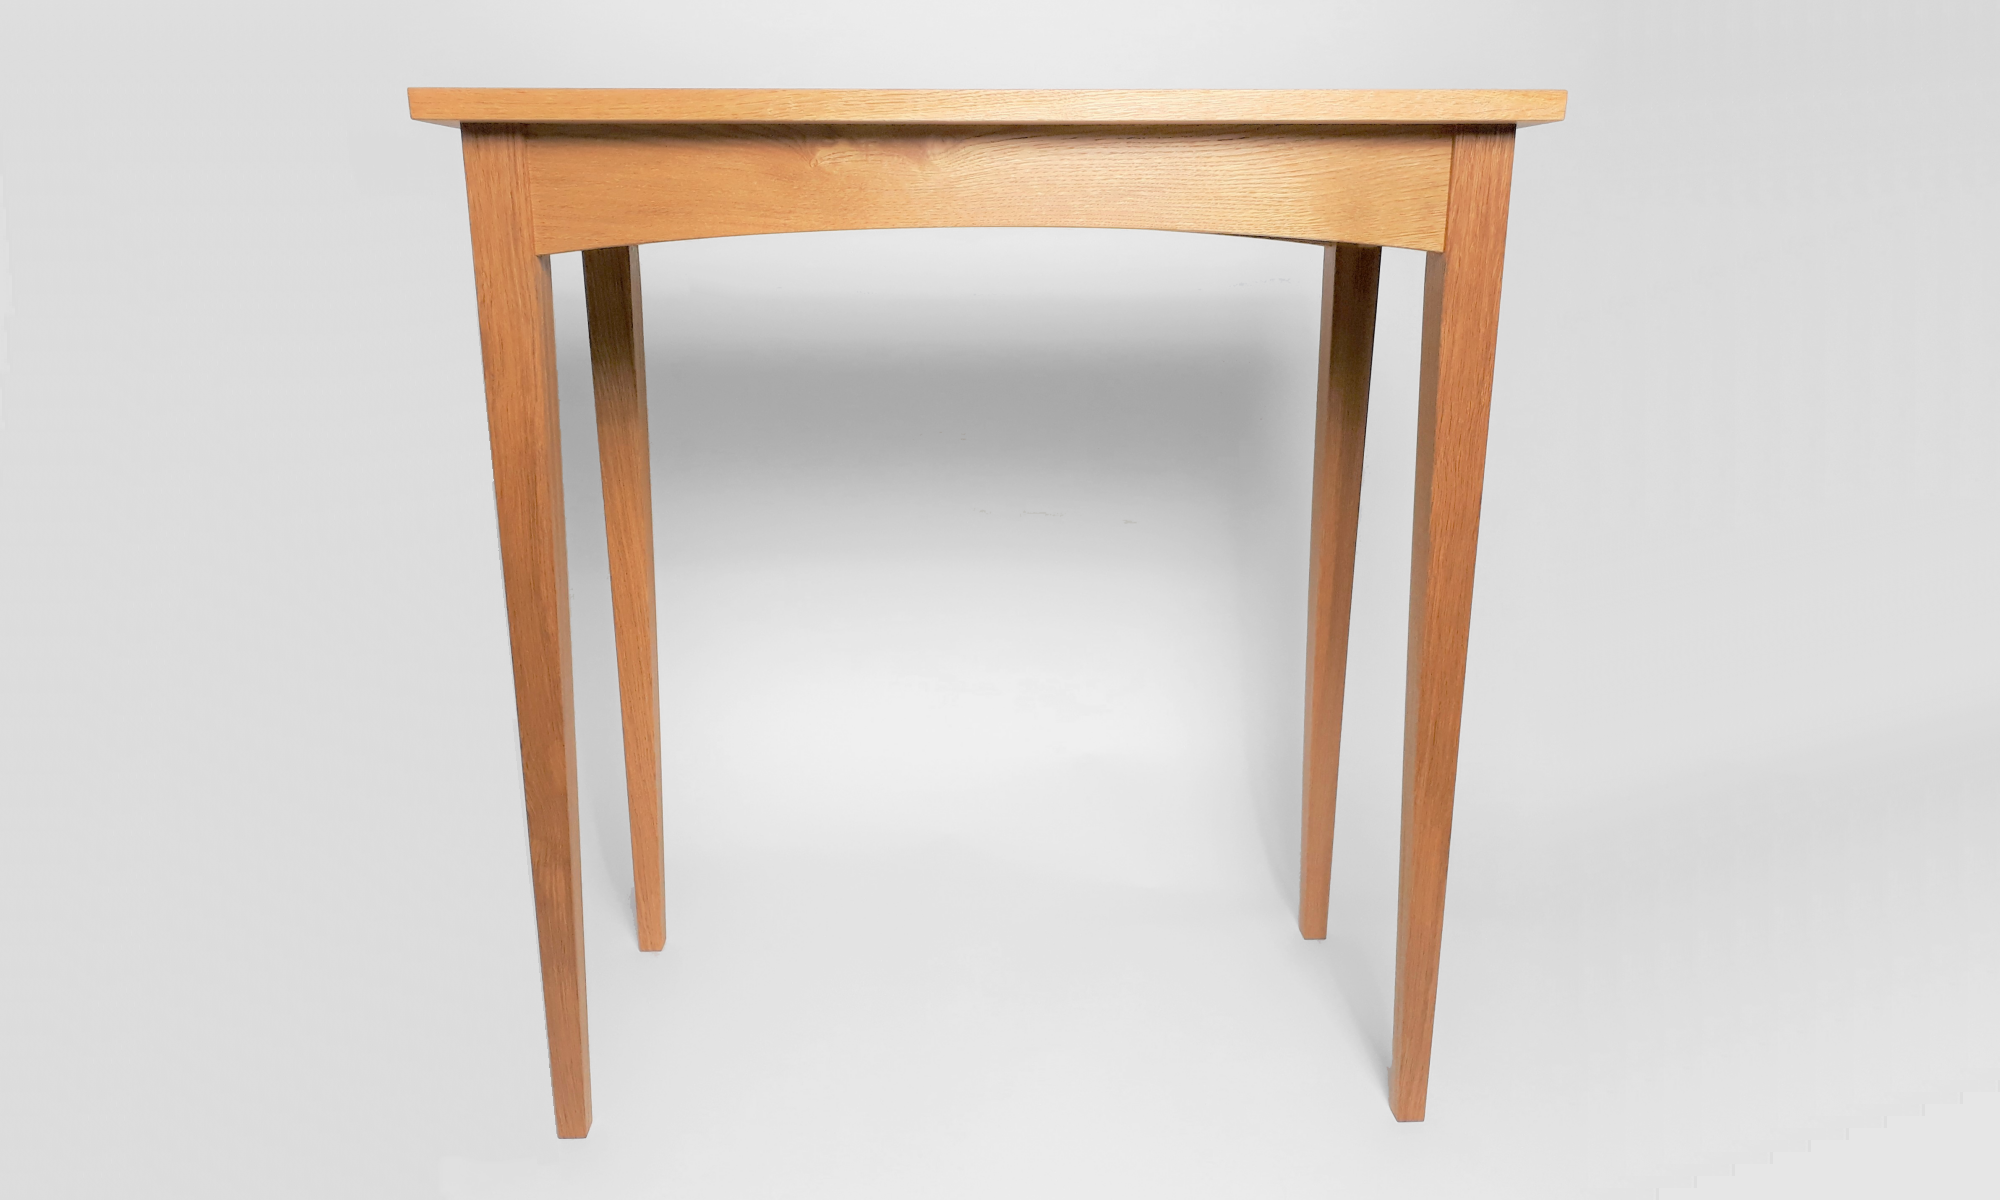 image of bespoke handcrafted hall table furniture